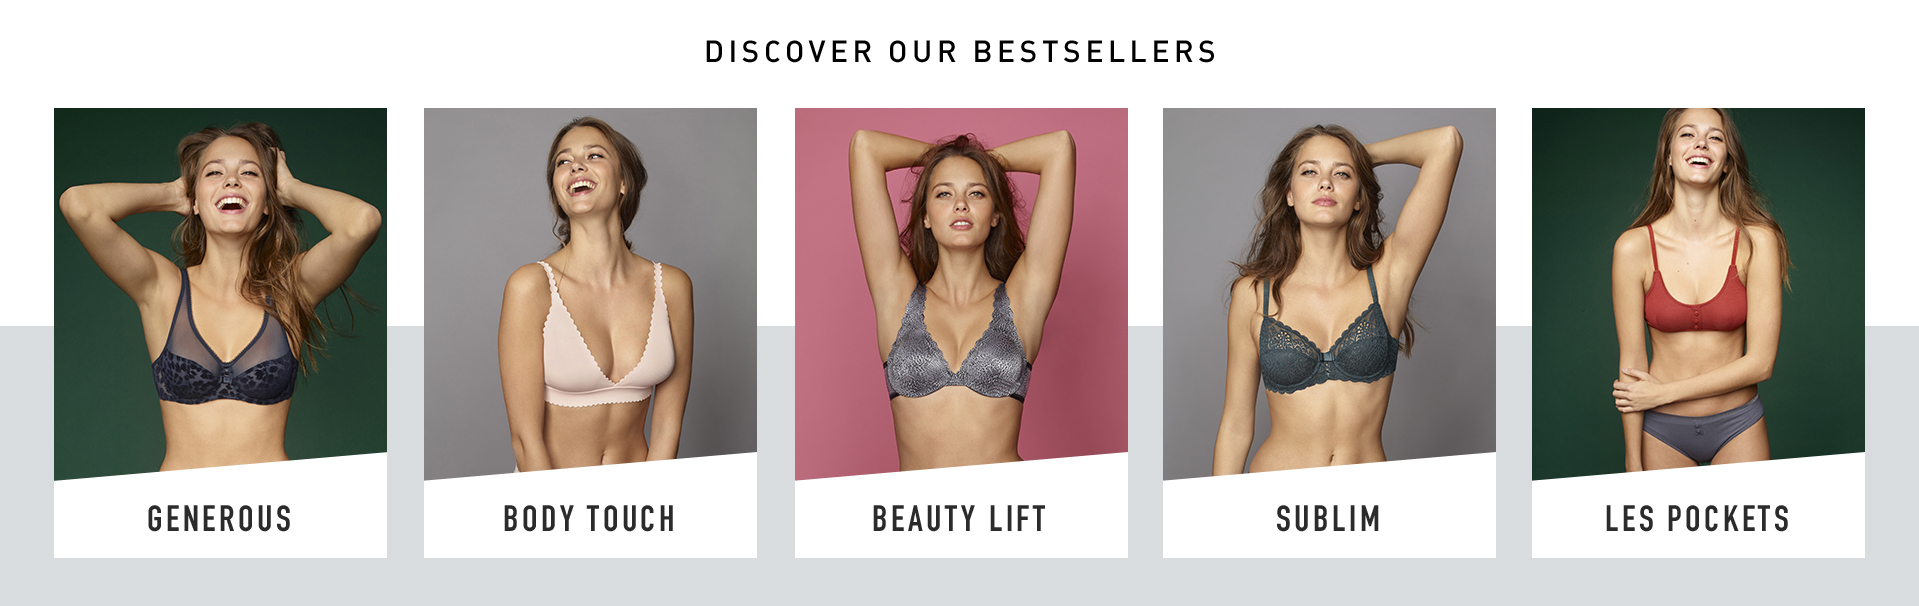 Discover our bestsellers